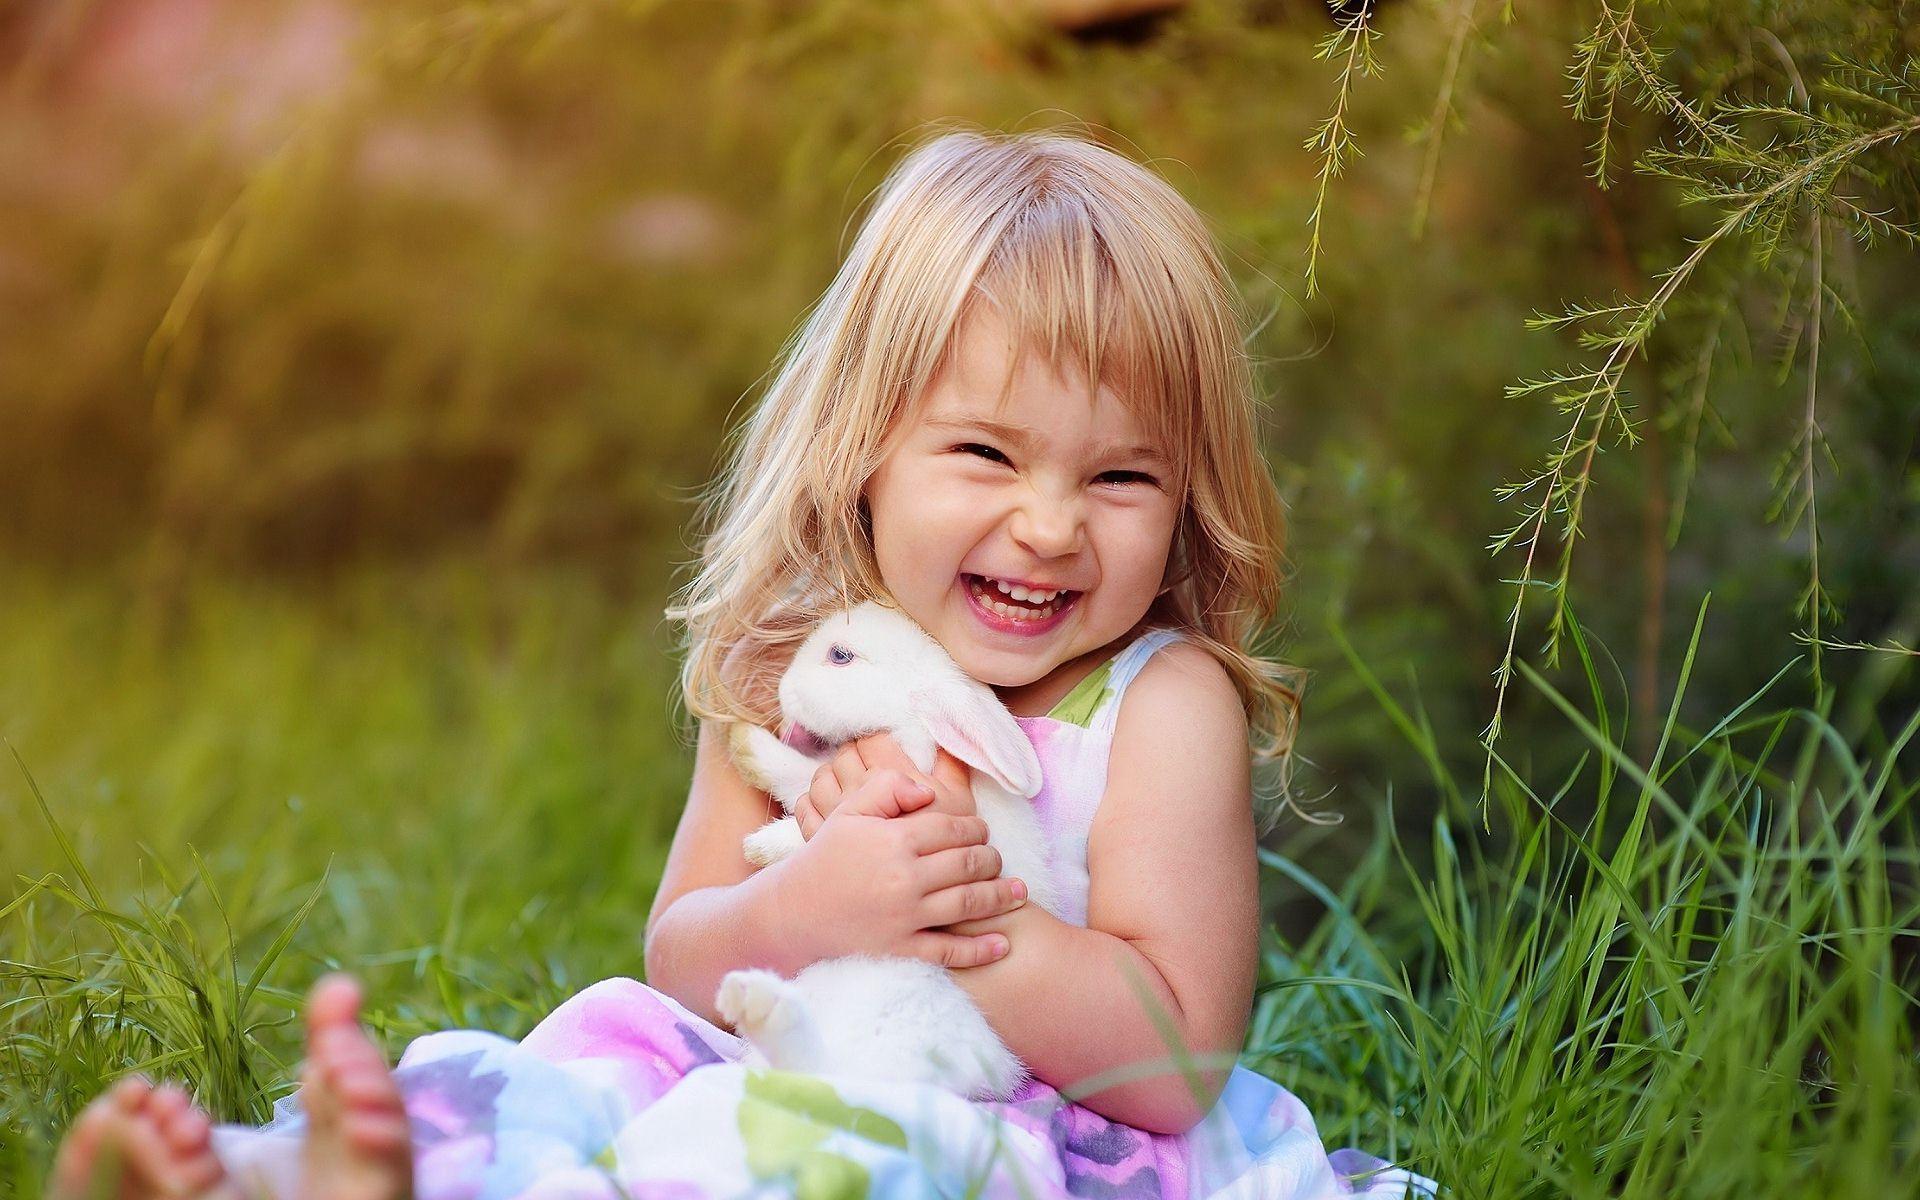 cute smiling child girl with rabbit wallpaper images pictures photos rh pinterest com